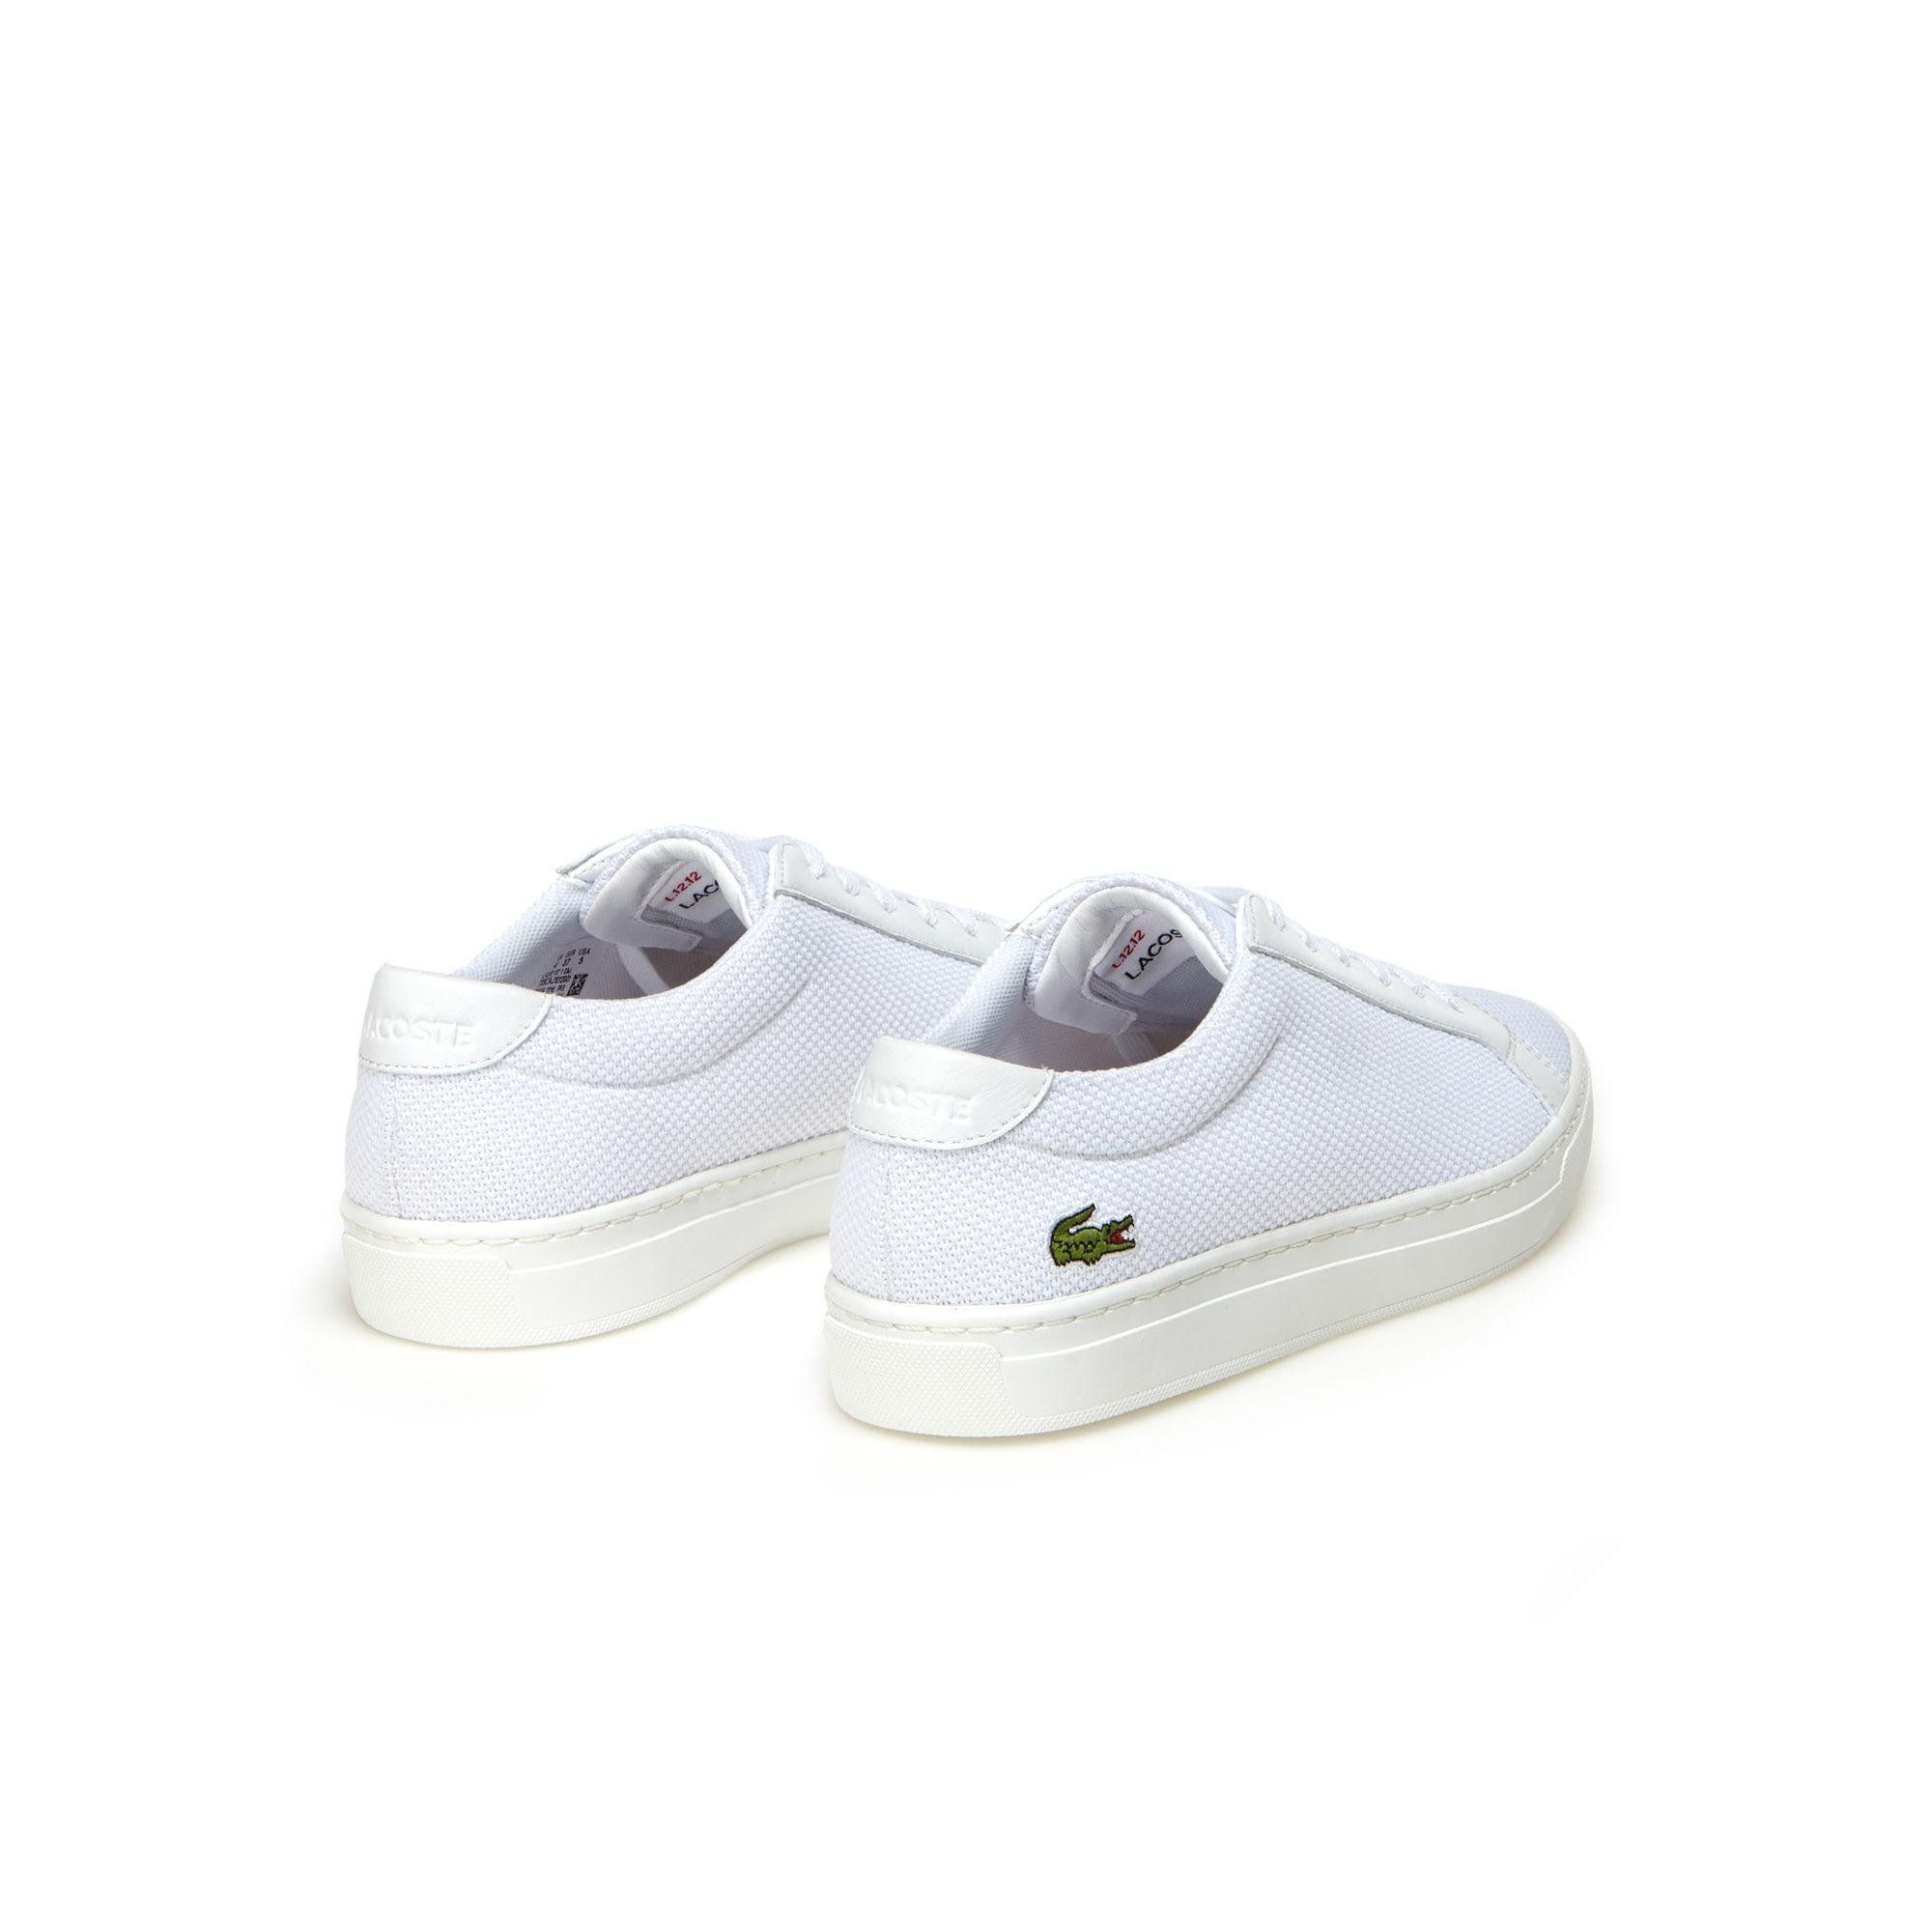 8f3a9aa9cc990 Lacoste - White Children s L.12.12 Bl Textile And Leather Trainers - Lyst.  View fullscreen